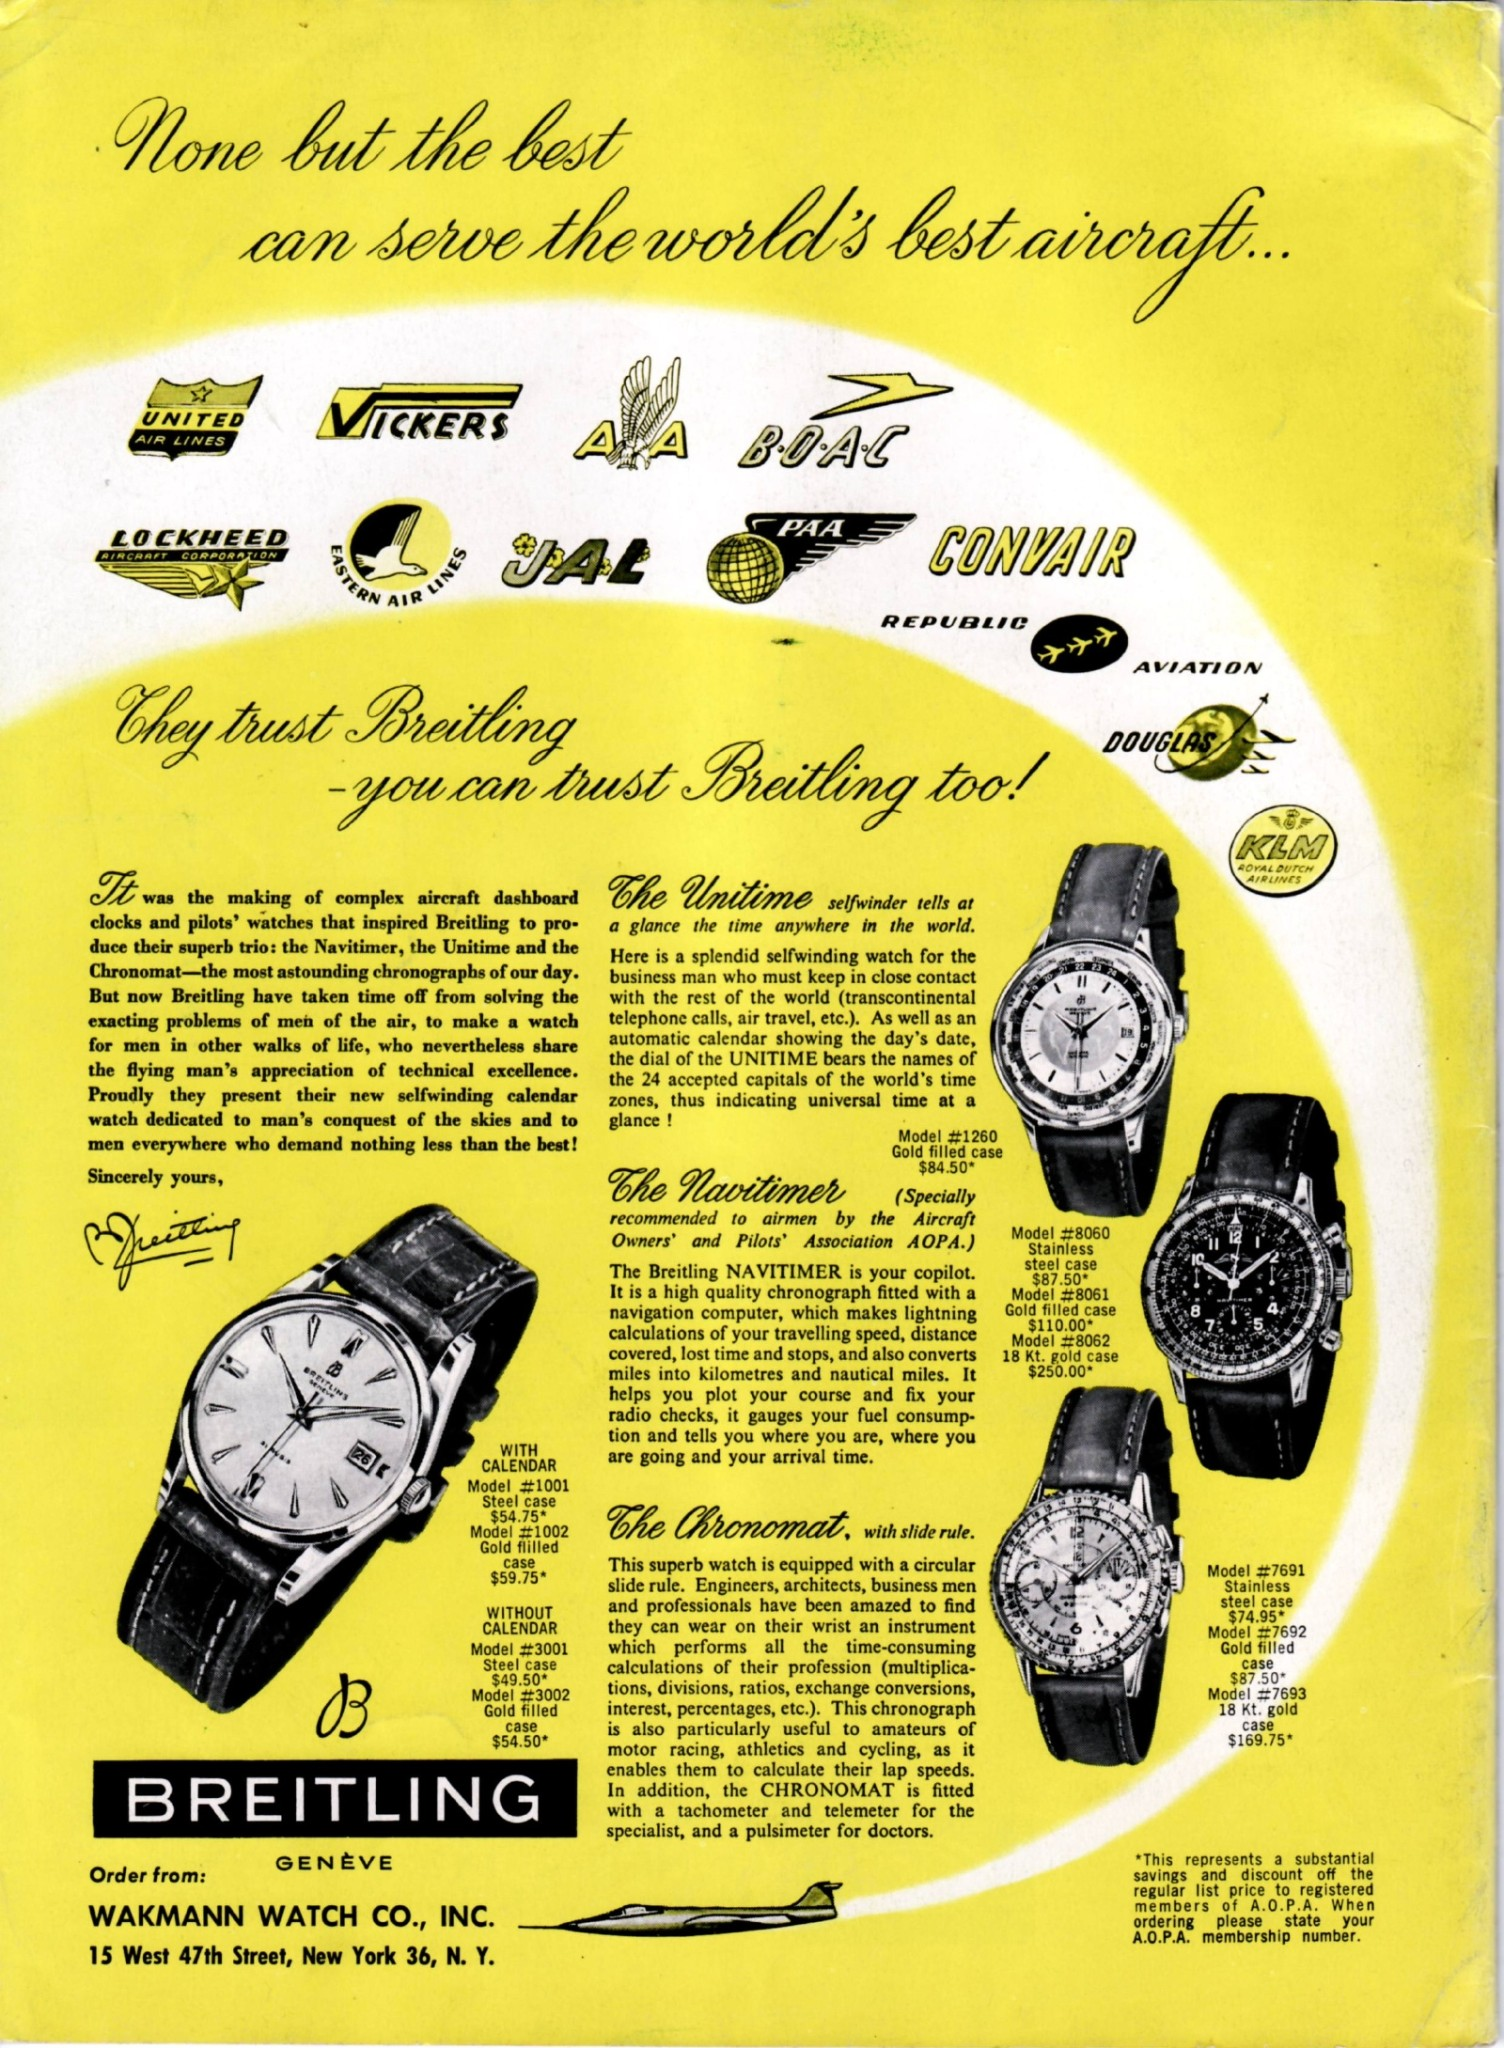 ExpertsWatches.com Breitling Navitimer AD